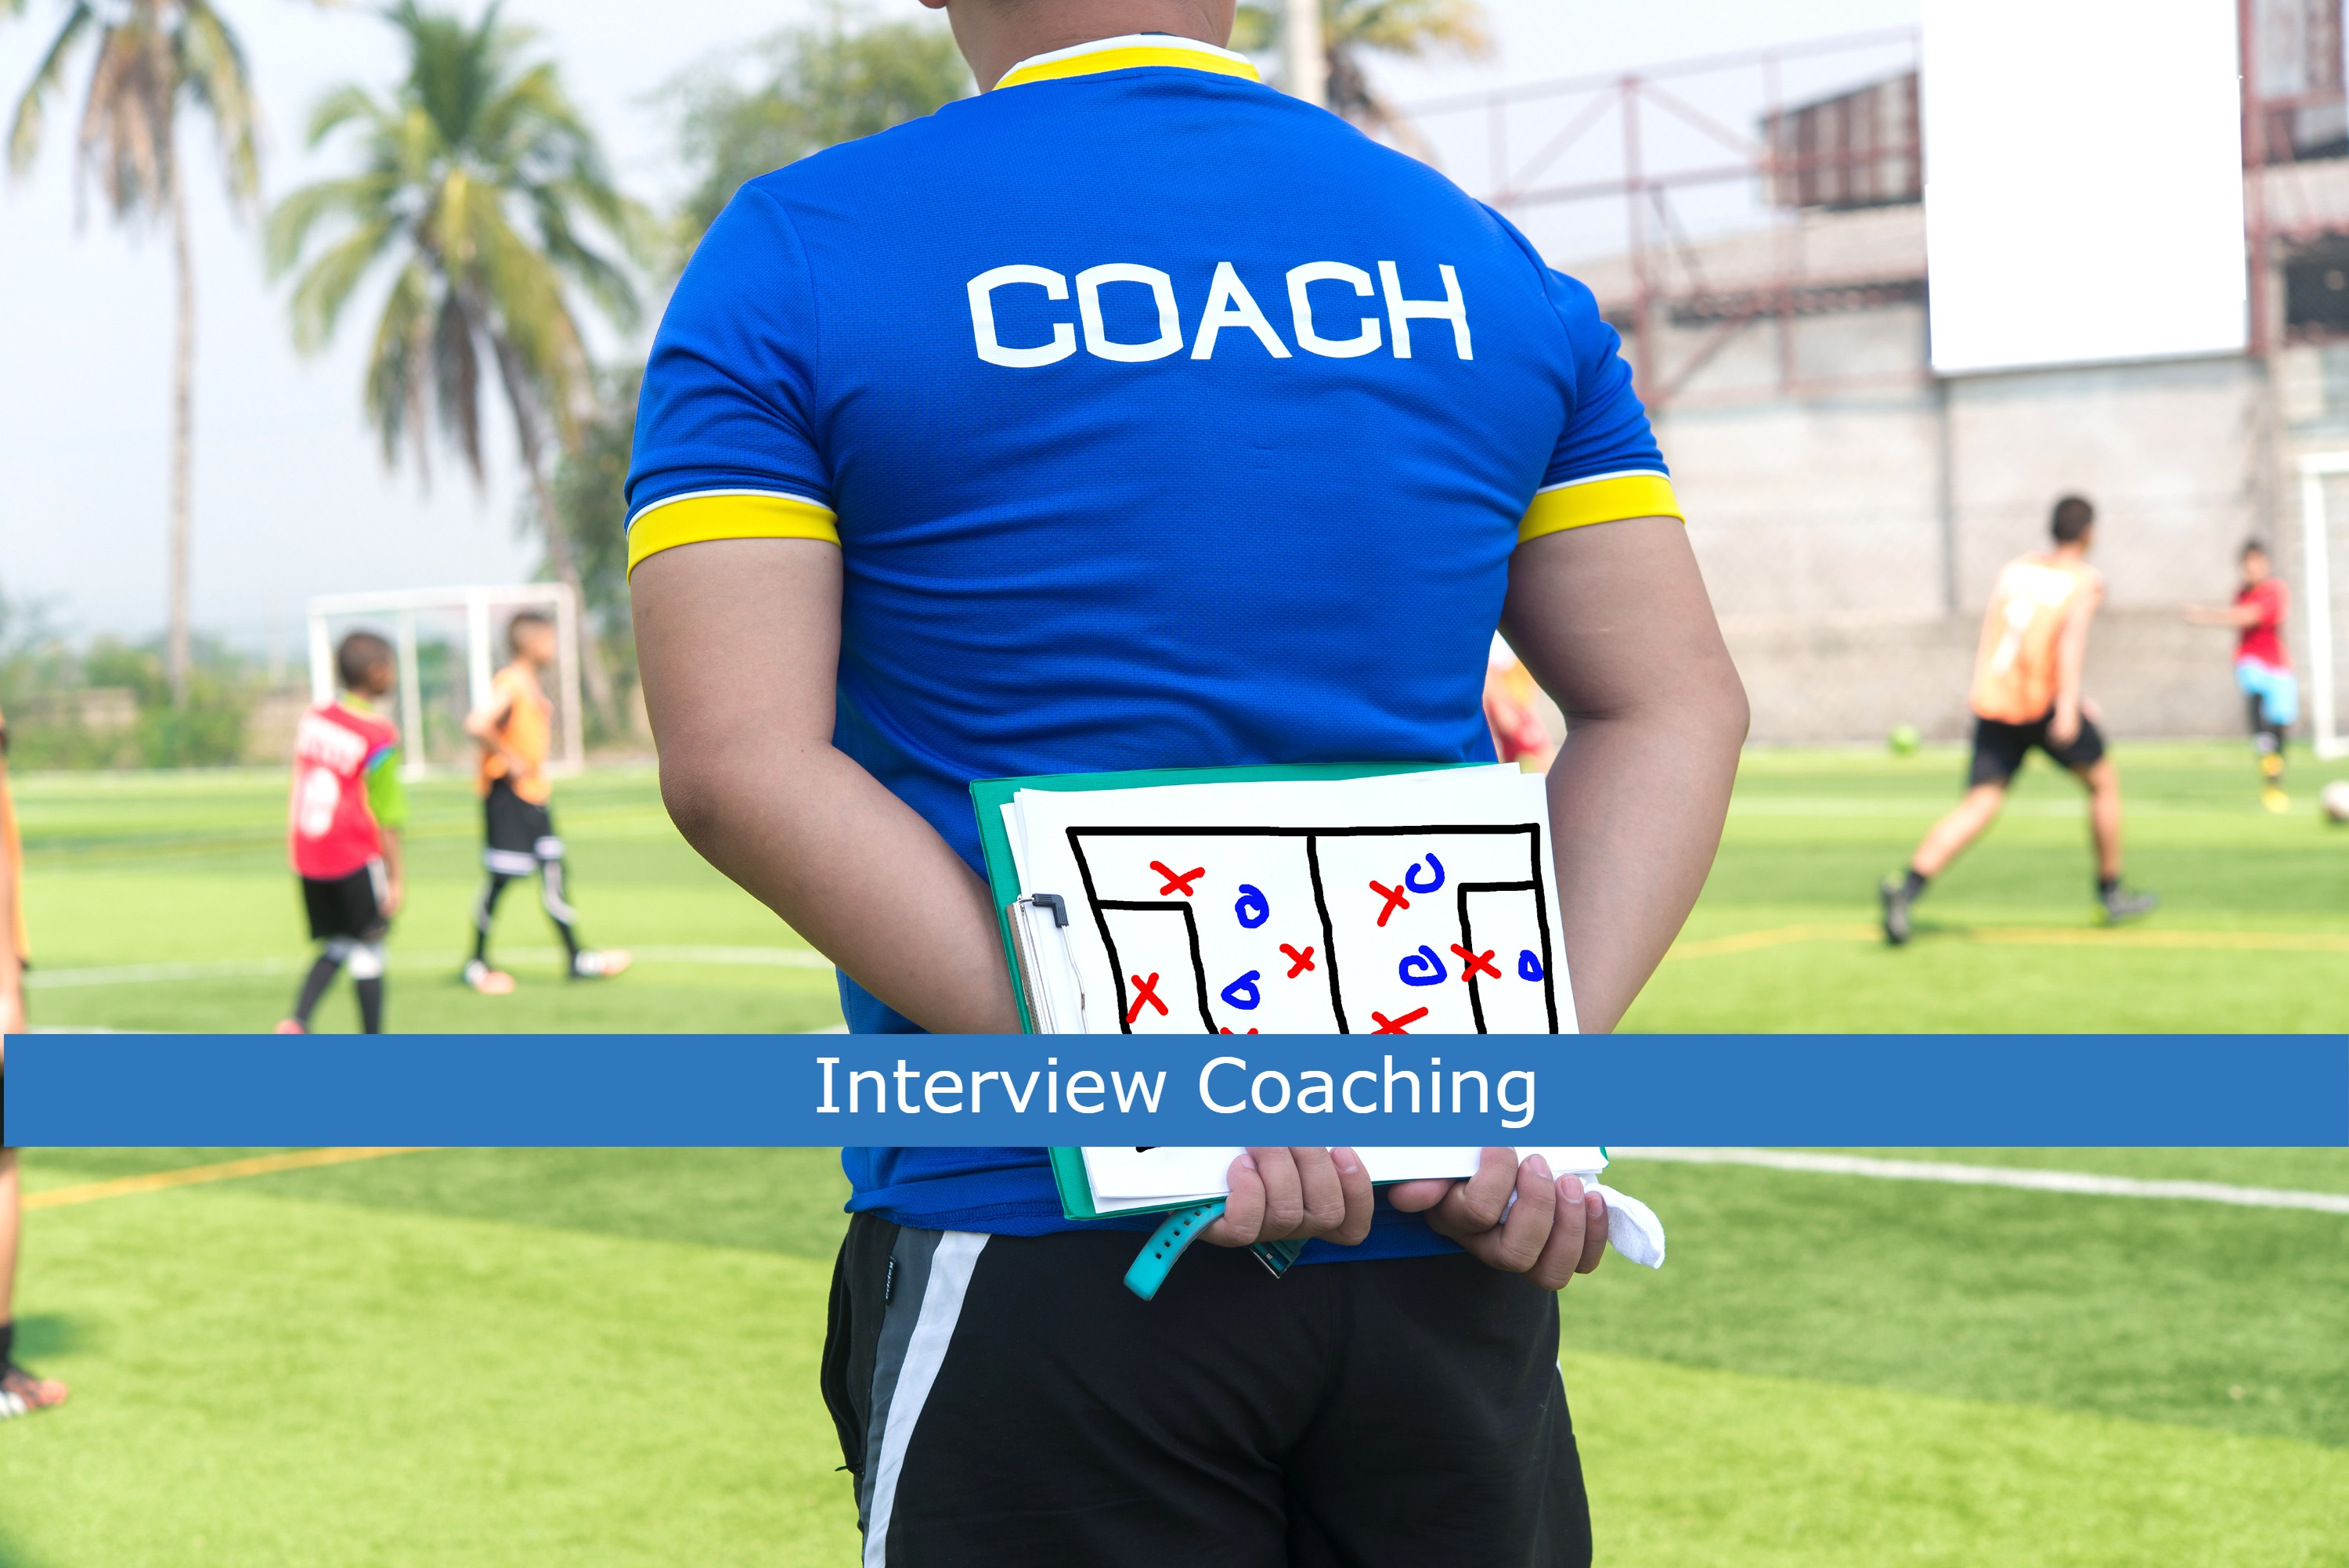 Interview Coaching will ensure you are confident and have your responses practiced and professional.